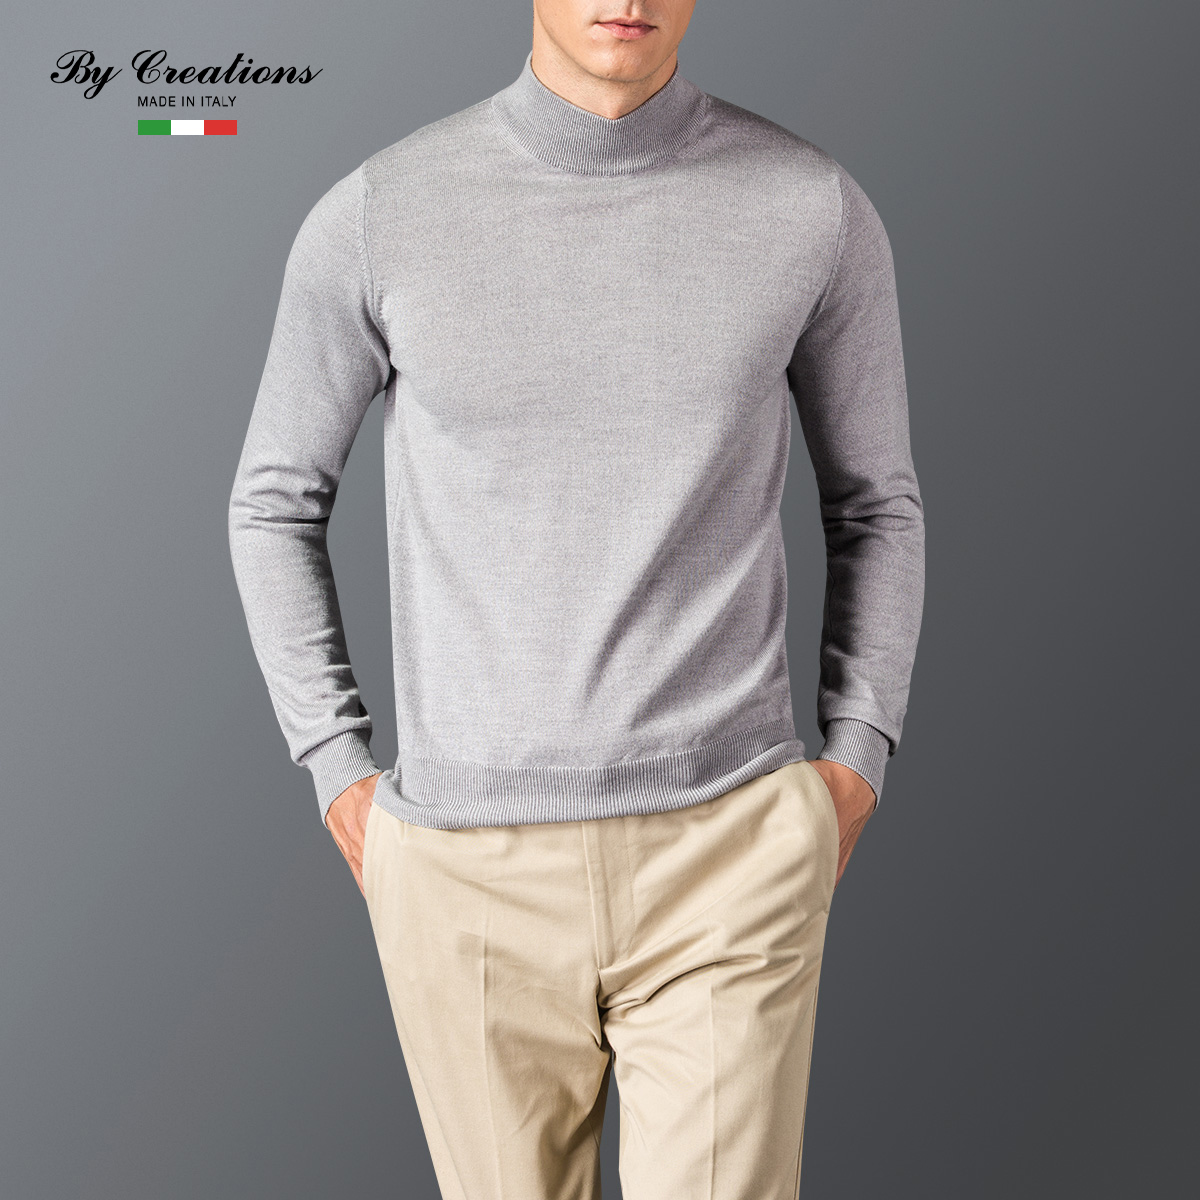 By creations/italian cypress product manufacturing new men's high collar and a half of pure wool sweater